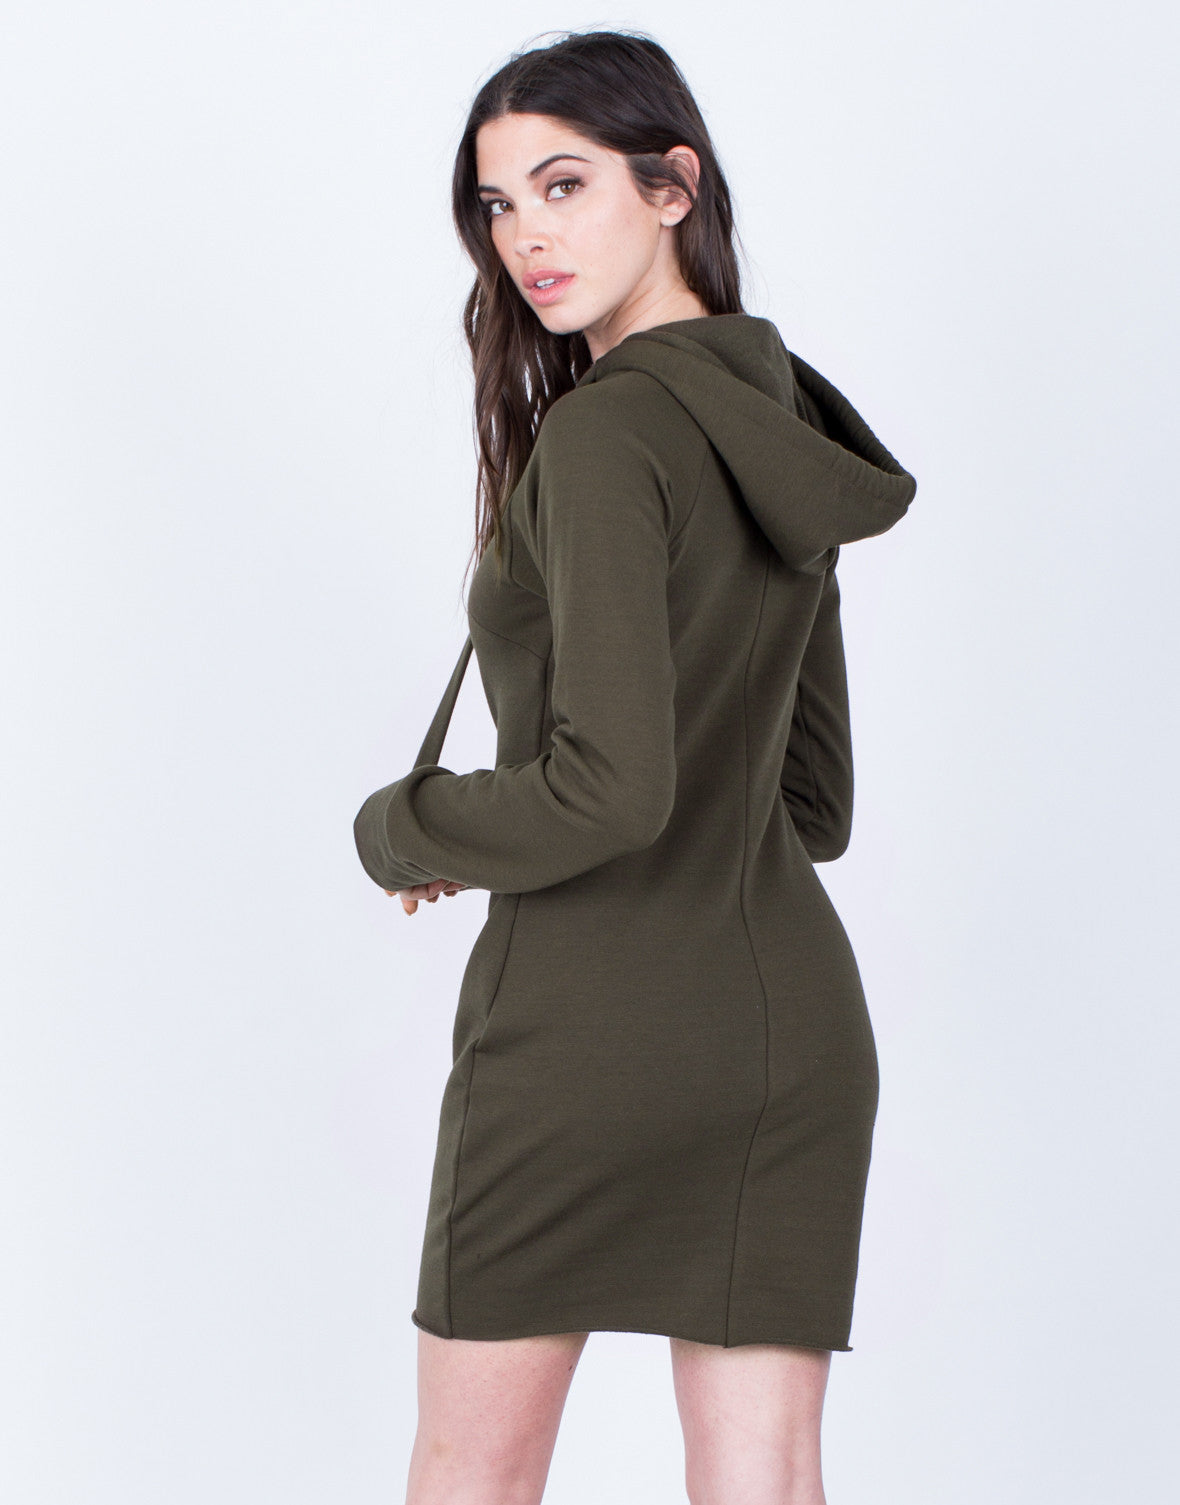 Back View of Hoodie Sweater Dress